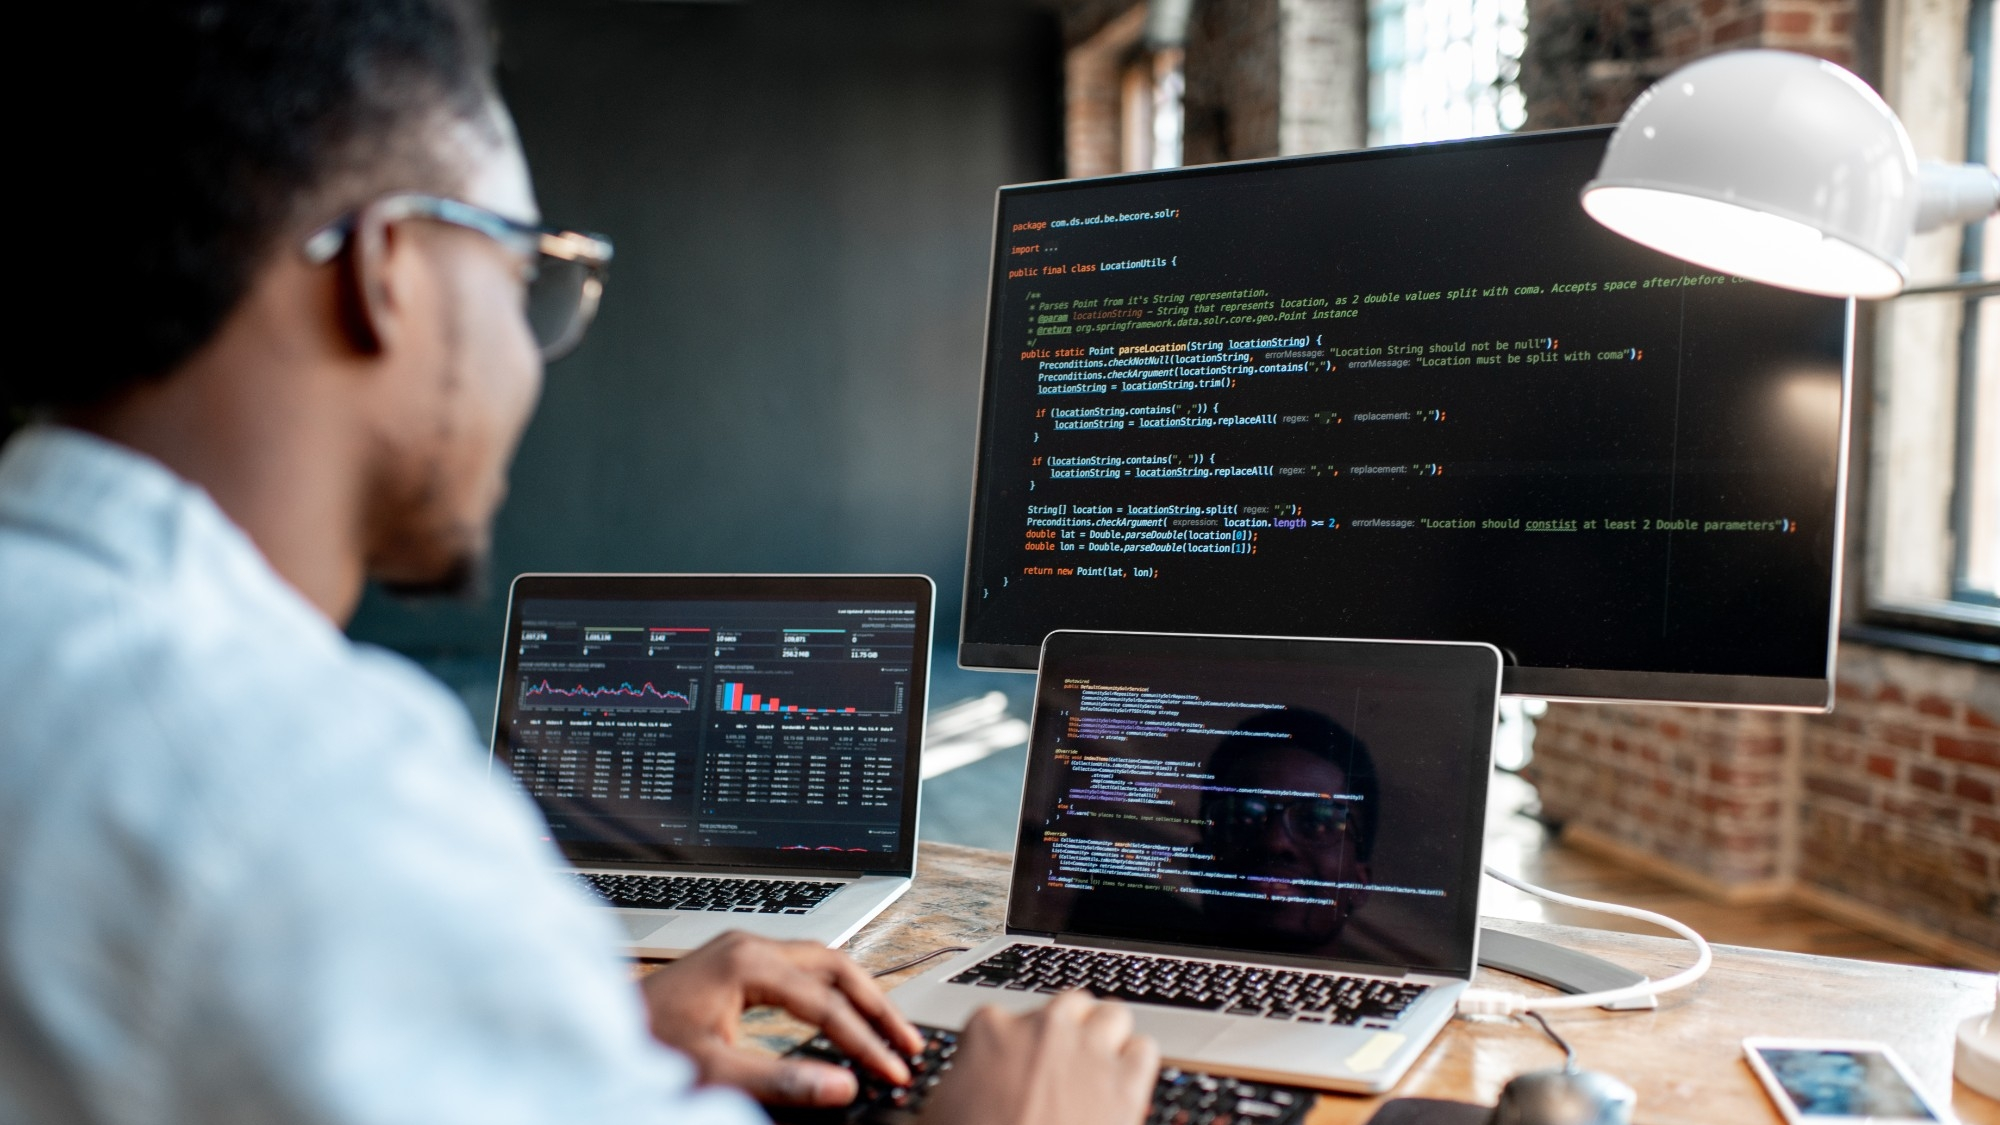 Man writing programming code, photo by RossHelen/Getty Images